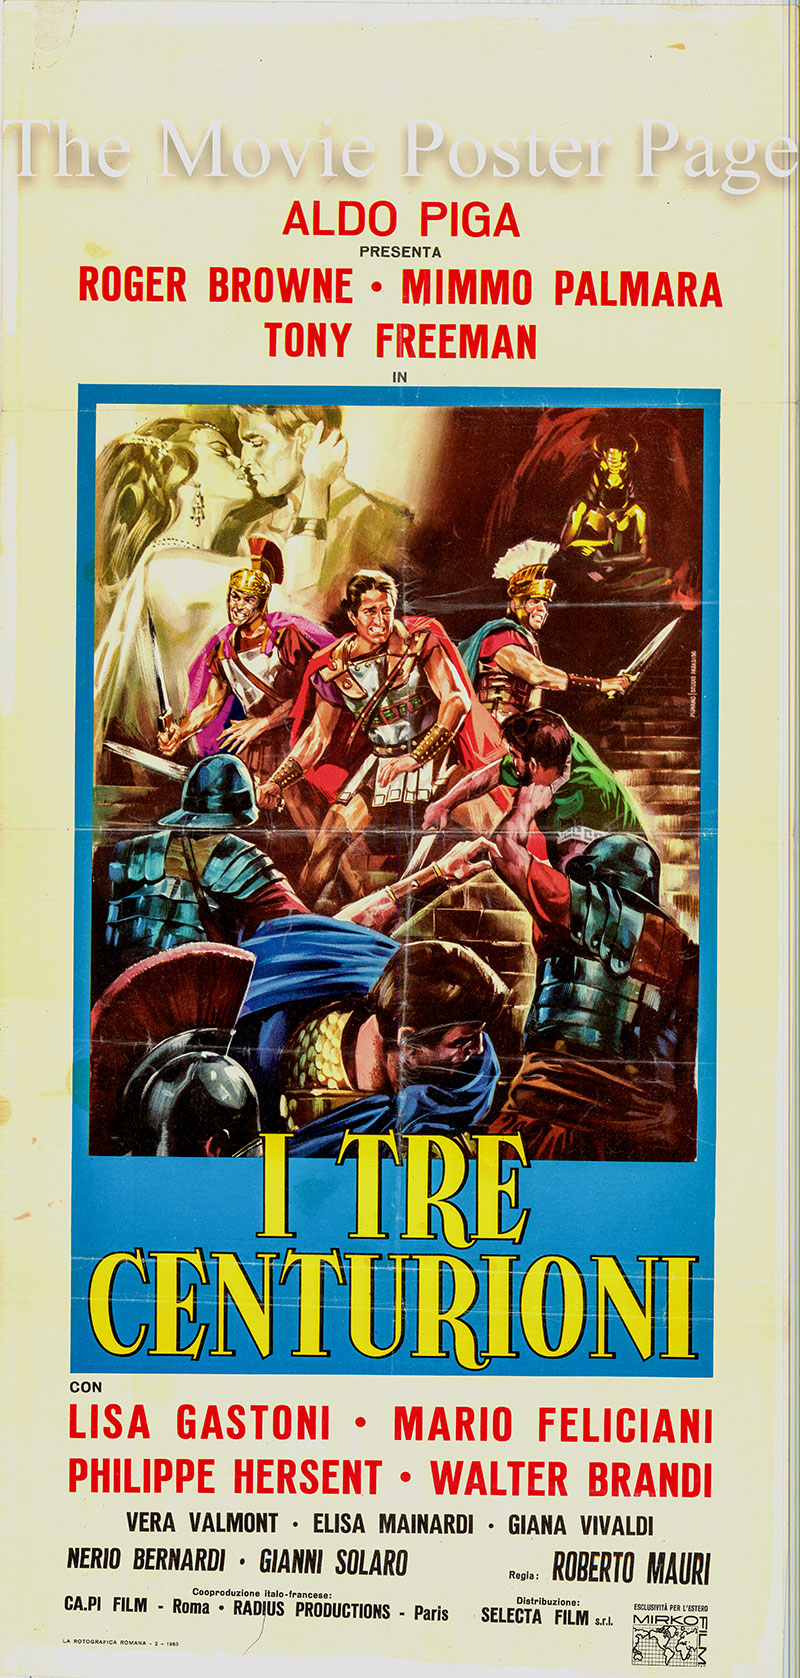 Pictured is the US one-sheet promotional poster for the film starring .